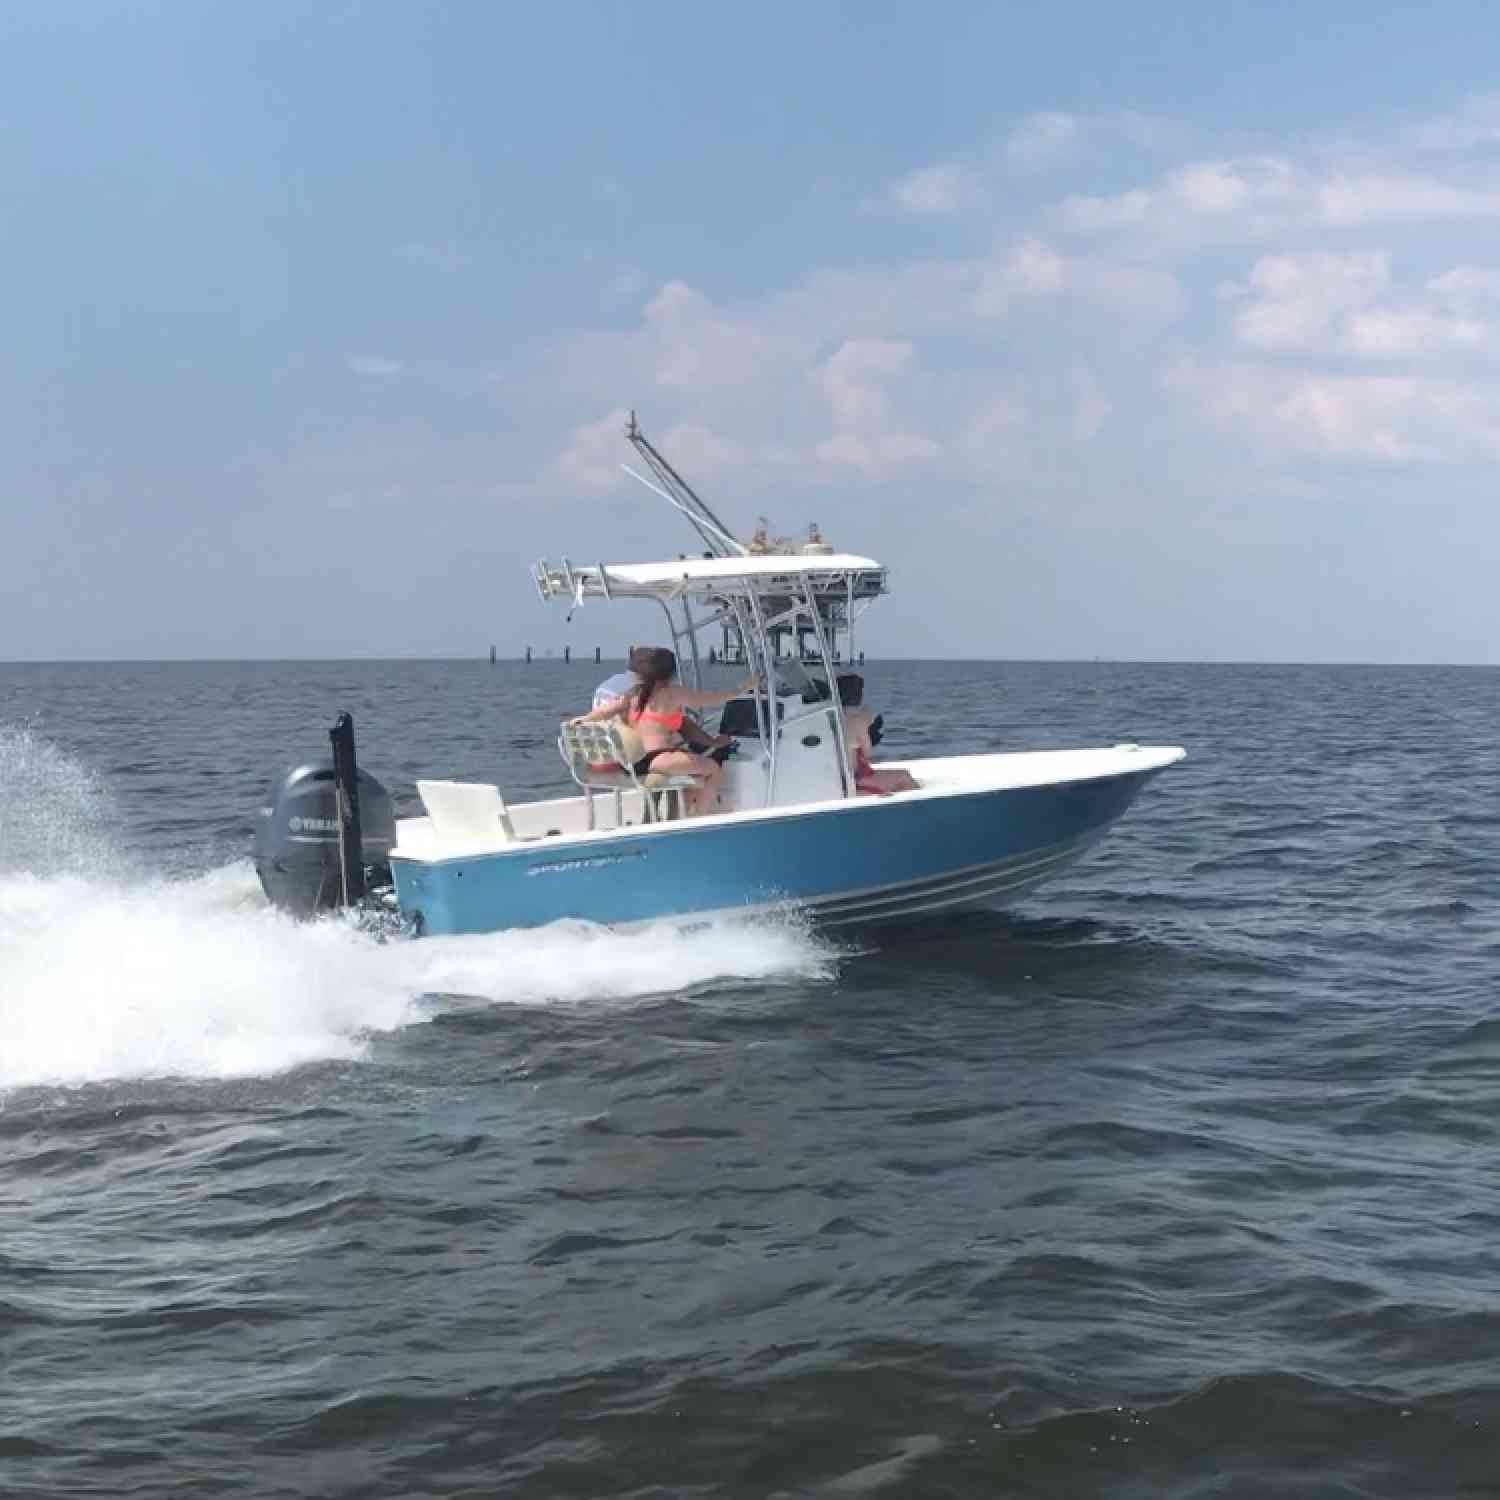 Title: Wide open - On board their Sportsman Masters 227 Bay Boat - Location: Dauphin Island, AL. Participating in the Photo Contest #SportsmanMay2018